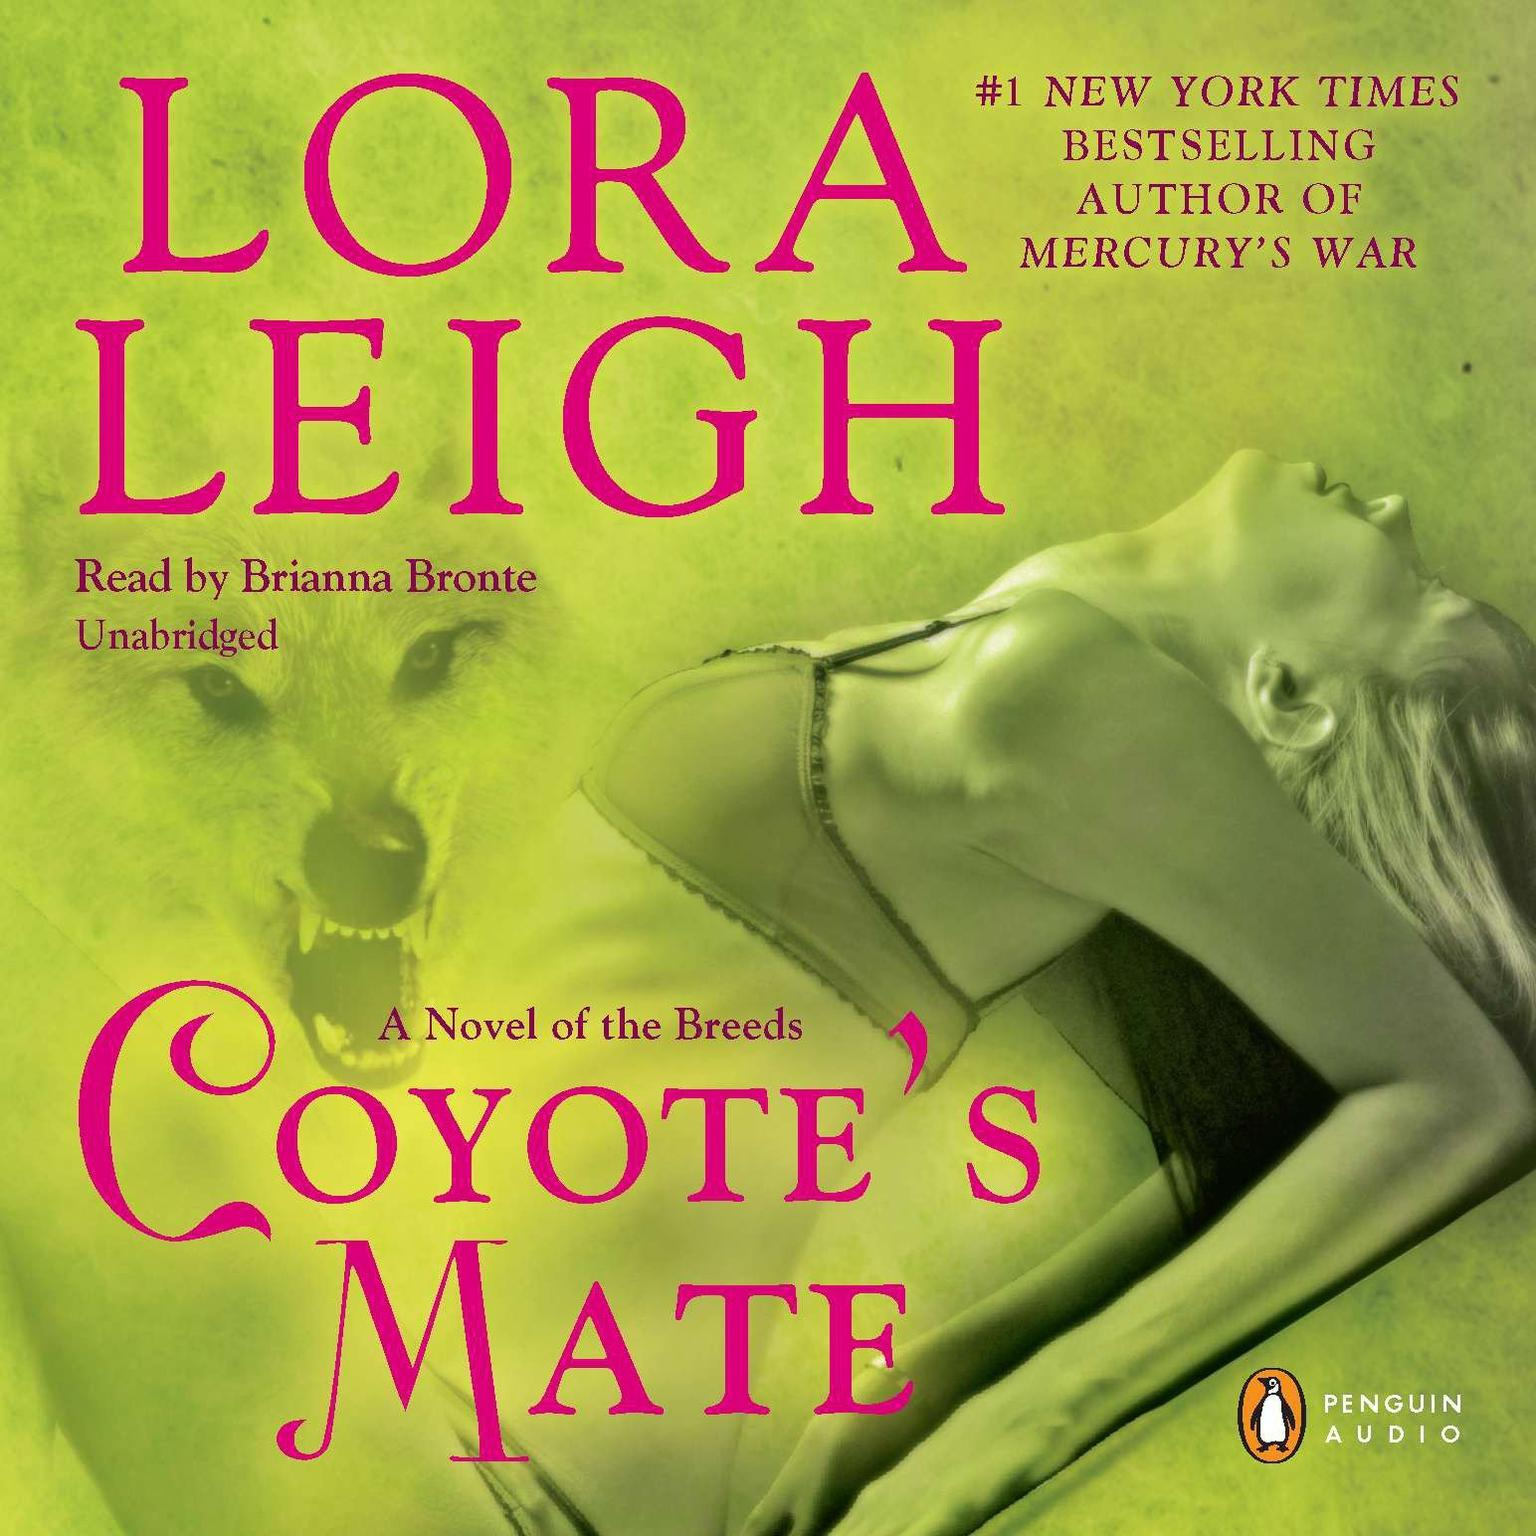 Printable Coyote's Mate: A Novel of the Breeds Audiobook Cover Art